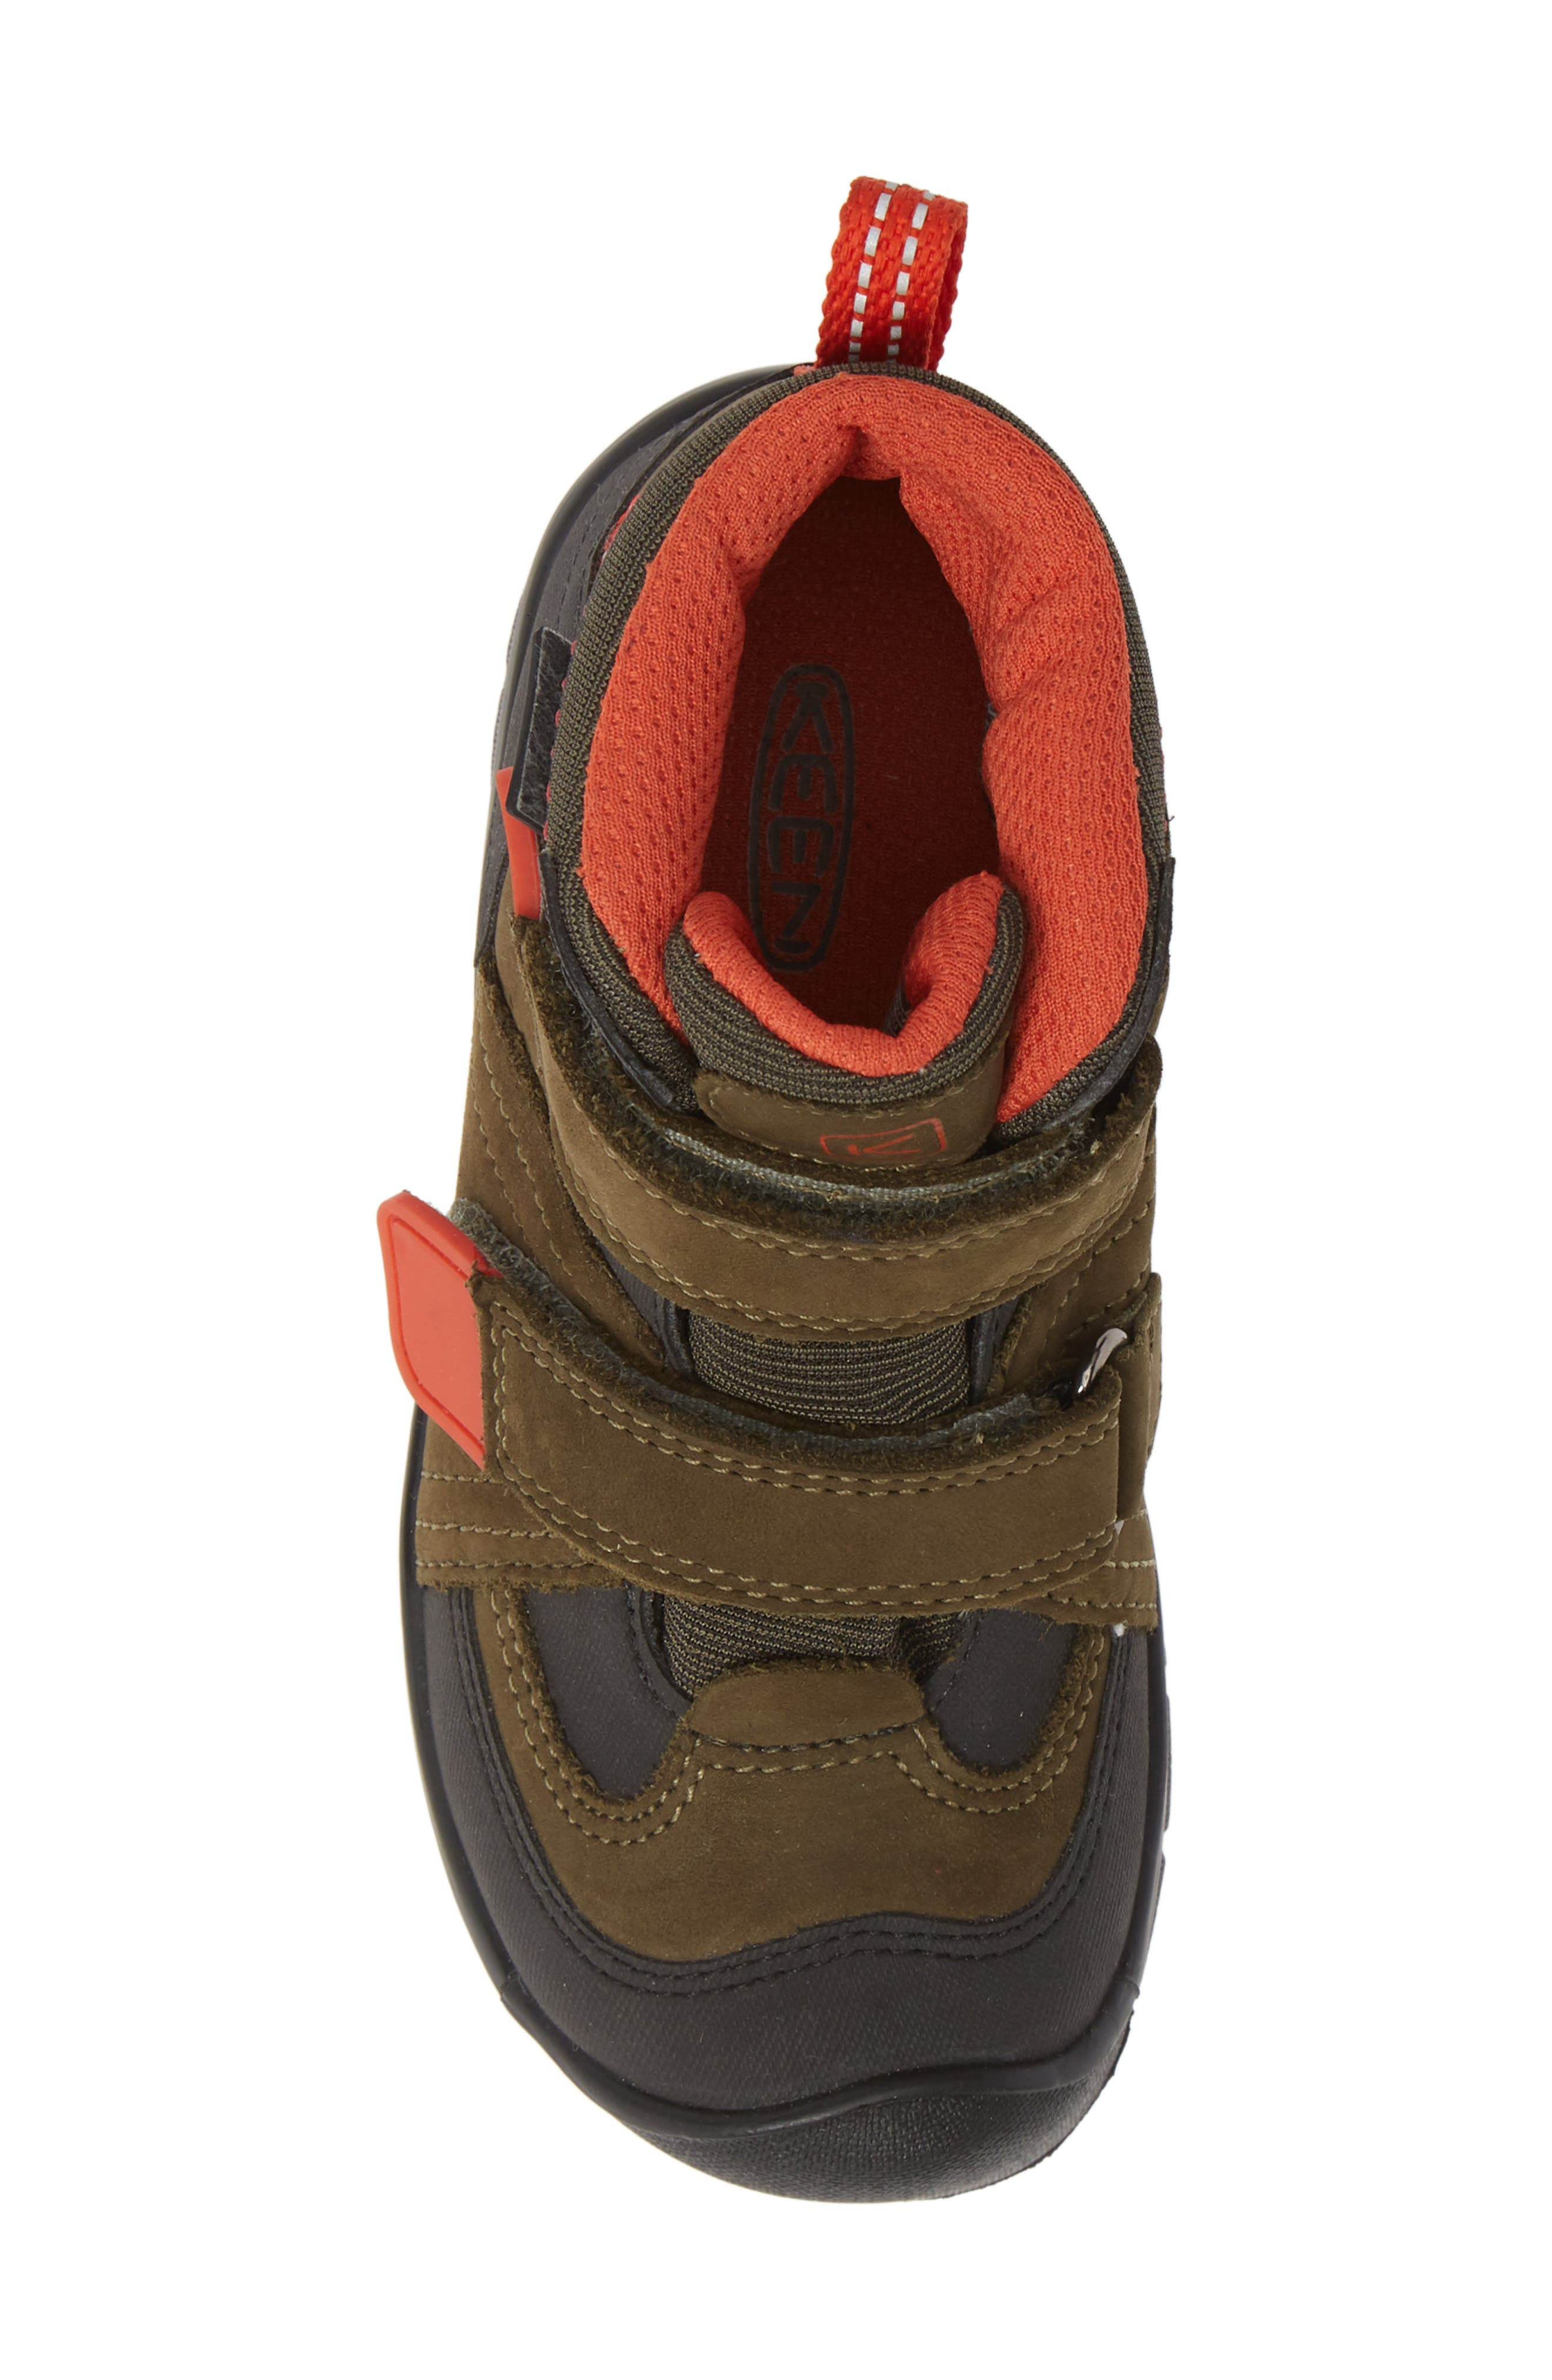 Hikeport Strap Waterproof Mid Boot,                             Alternate thumbnail 18, color,